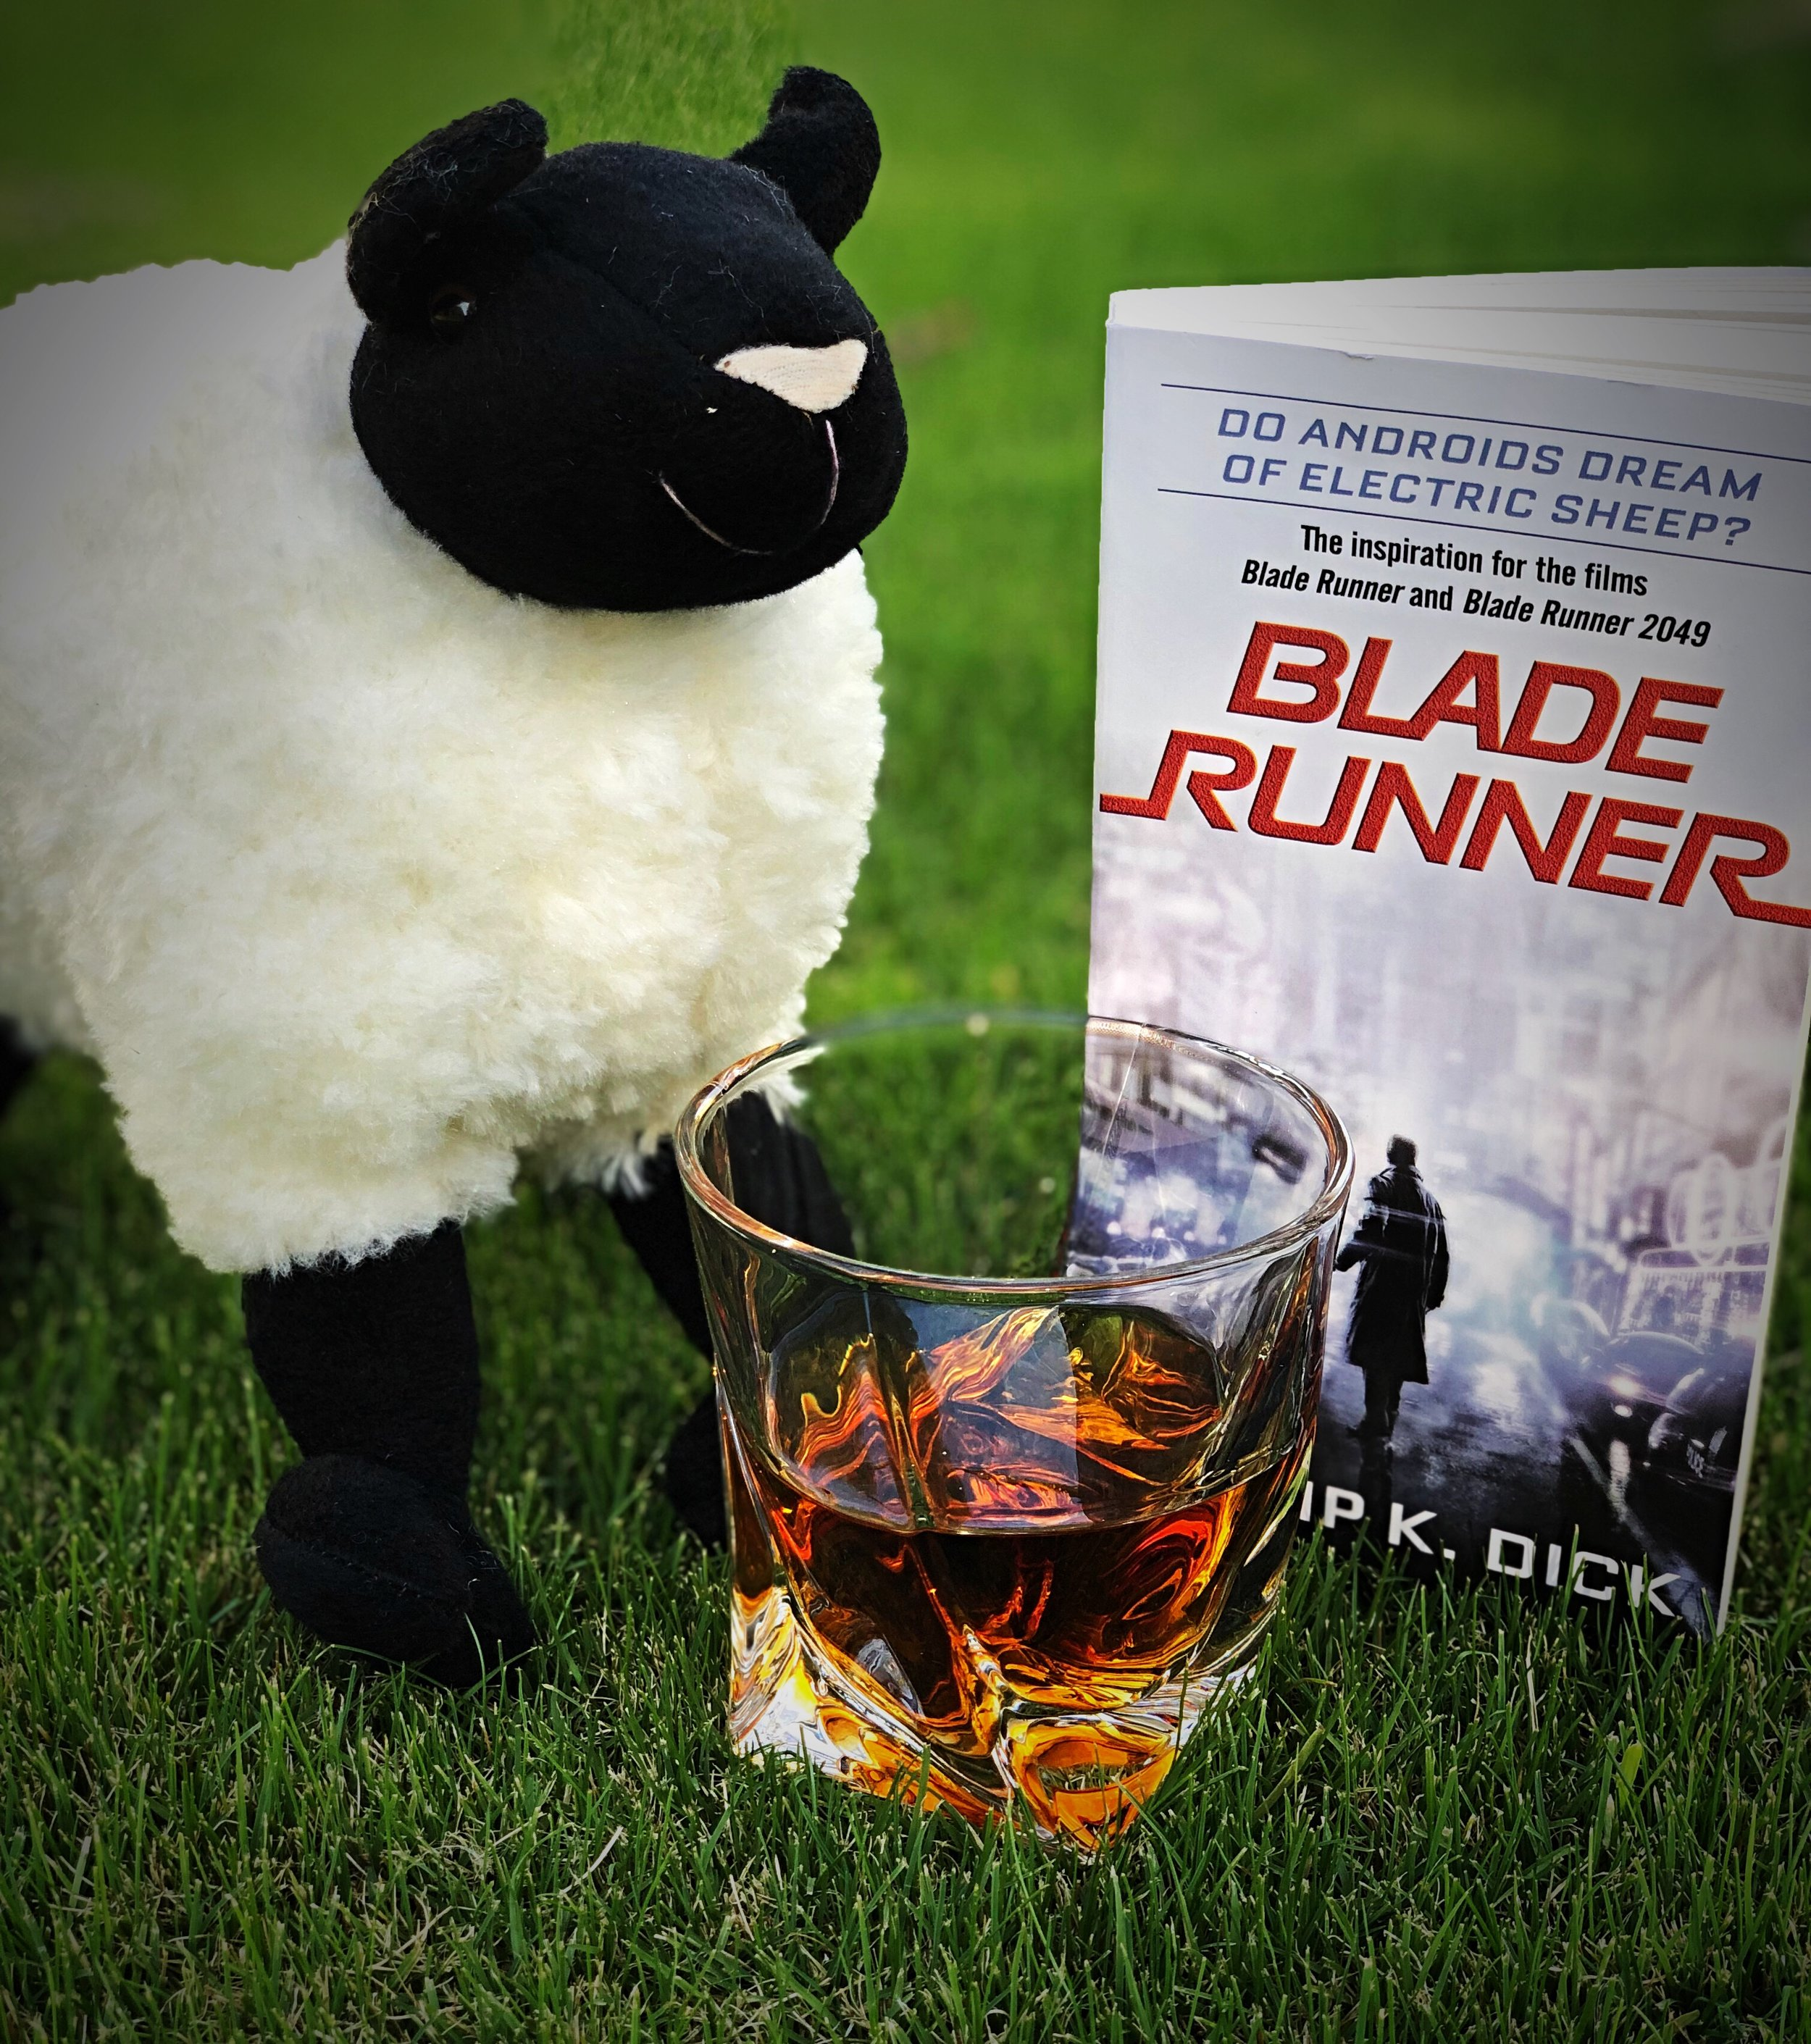 Bourbon, neat, just like Deckard drinks with Rachael in Do Androids Dream of Electric Sheep, by Philip K. Dick.